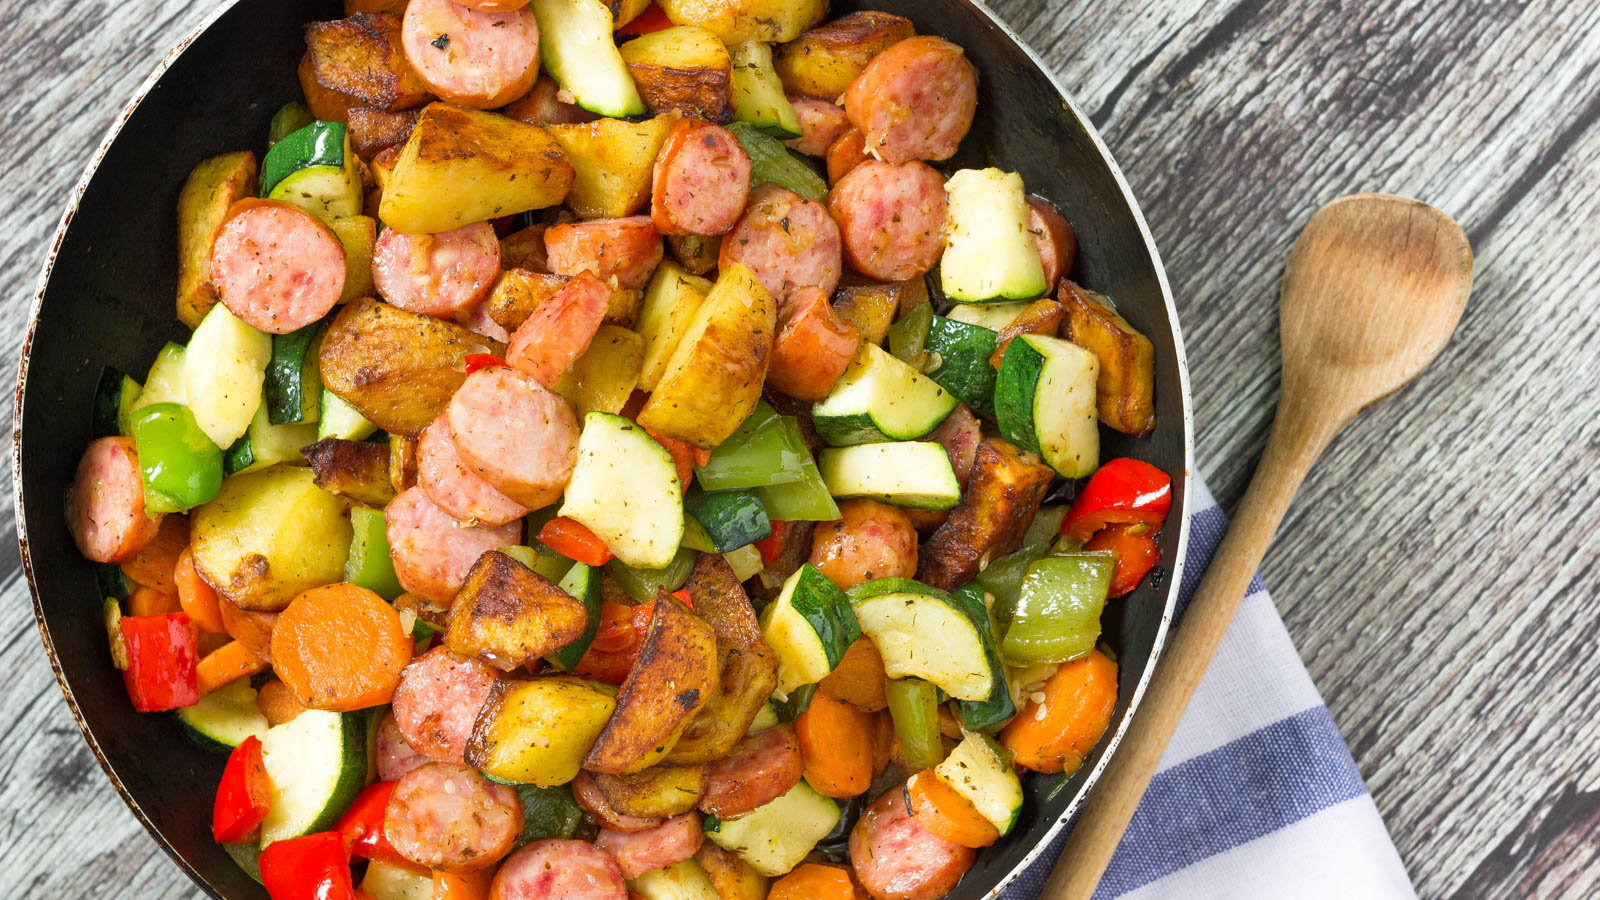 crock pot meal with sausage and vegetables